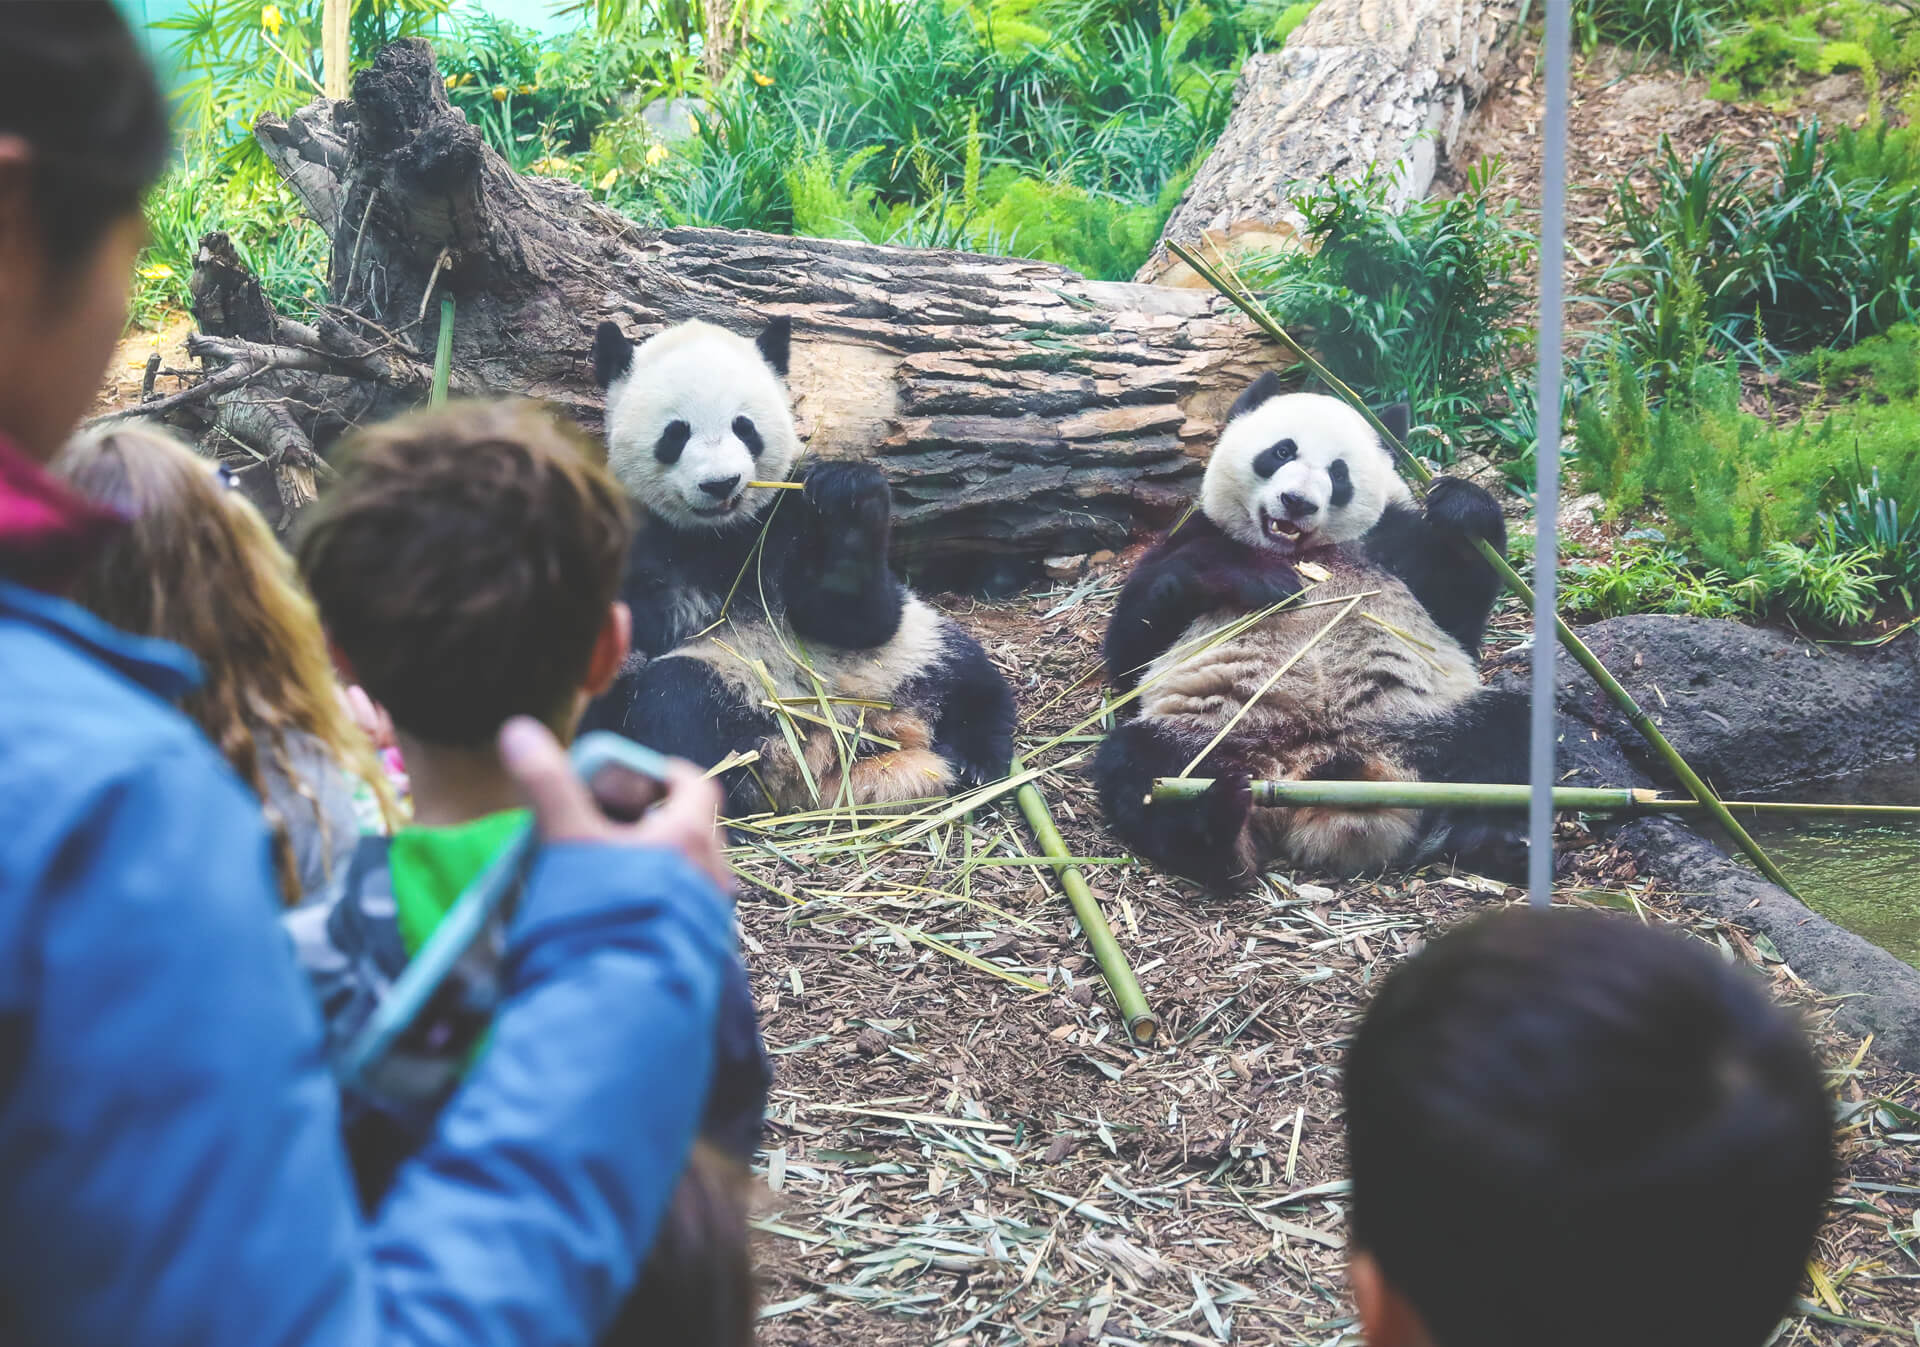 Observing Giant Pandas at the Calgary Zoo